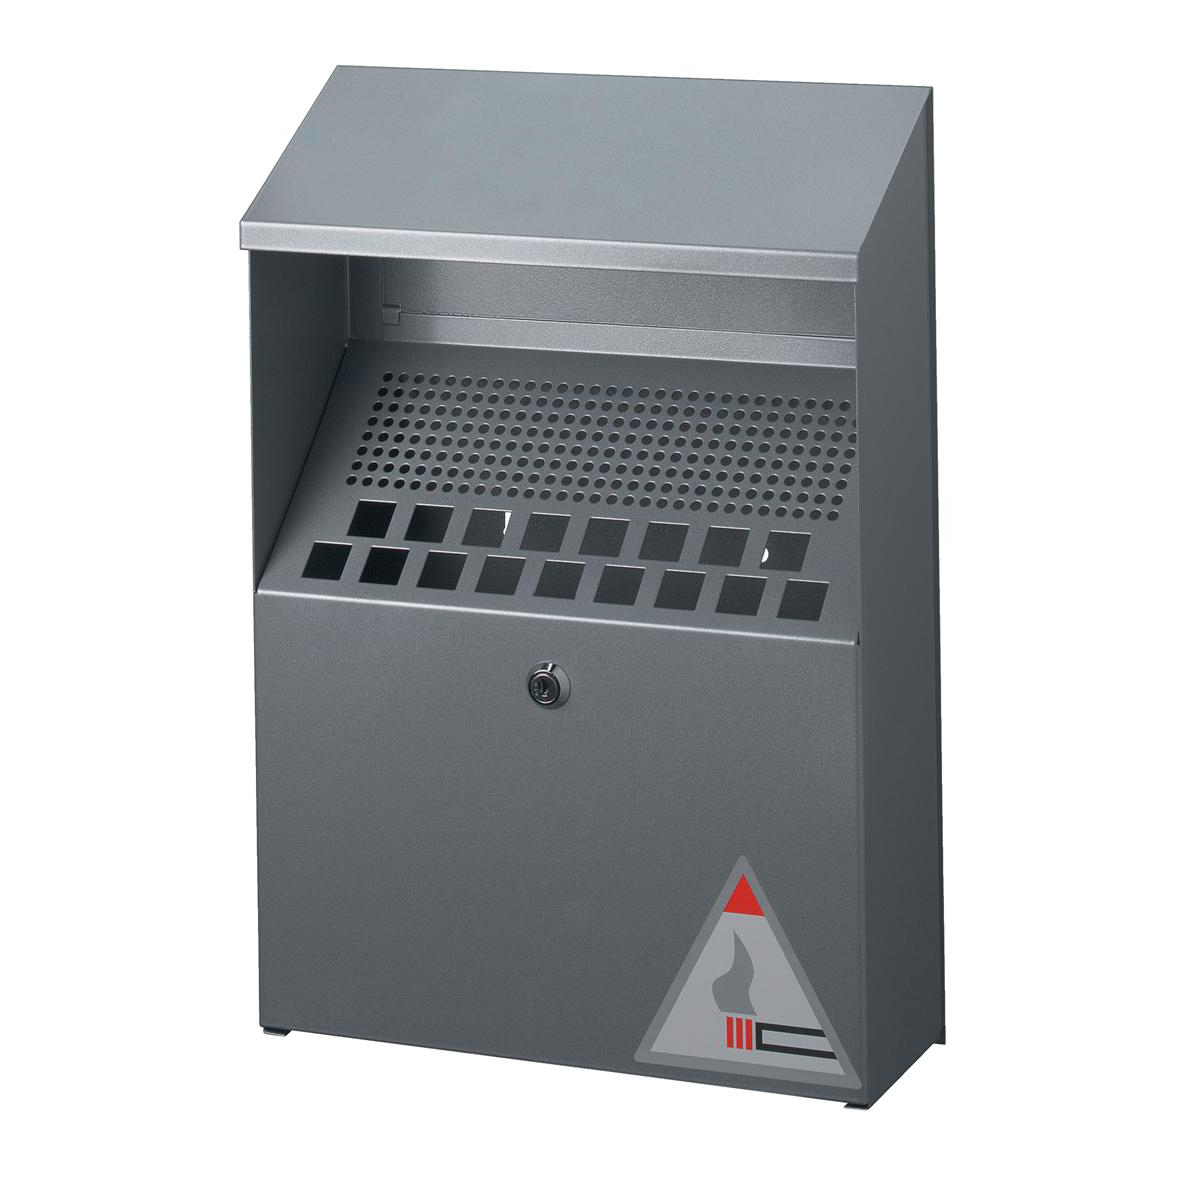 Ash Bins Durable Ash Bin Wall-mounted Capacity of 4 Litres 310x107x450mm Silver Ref 3334/23